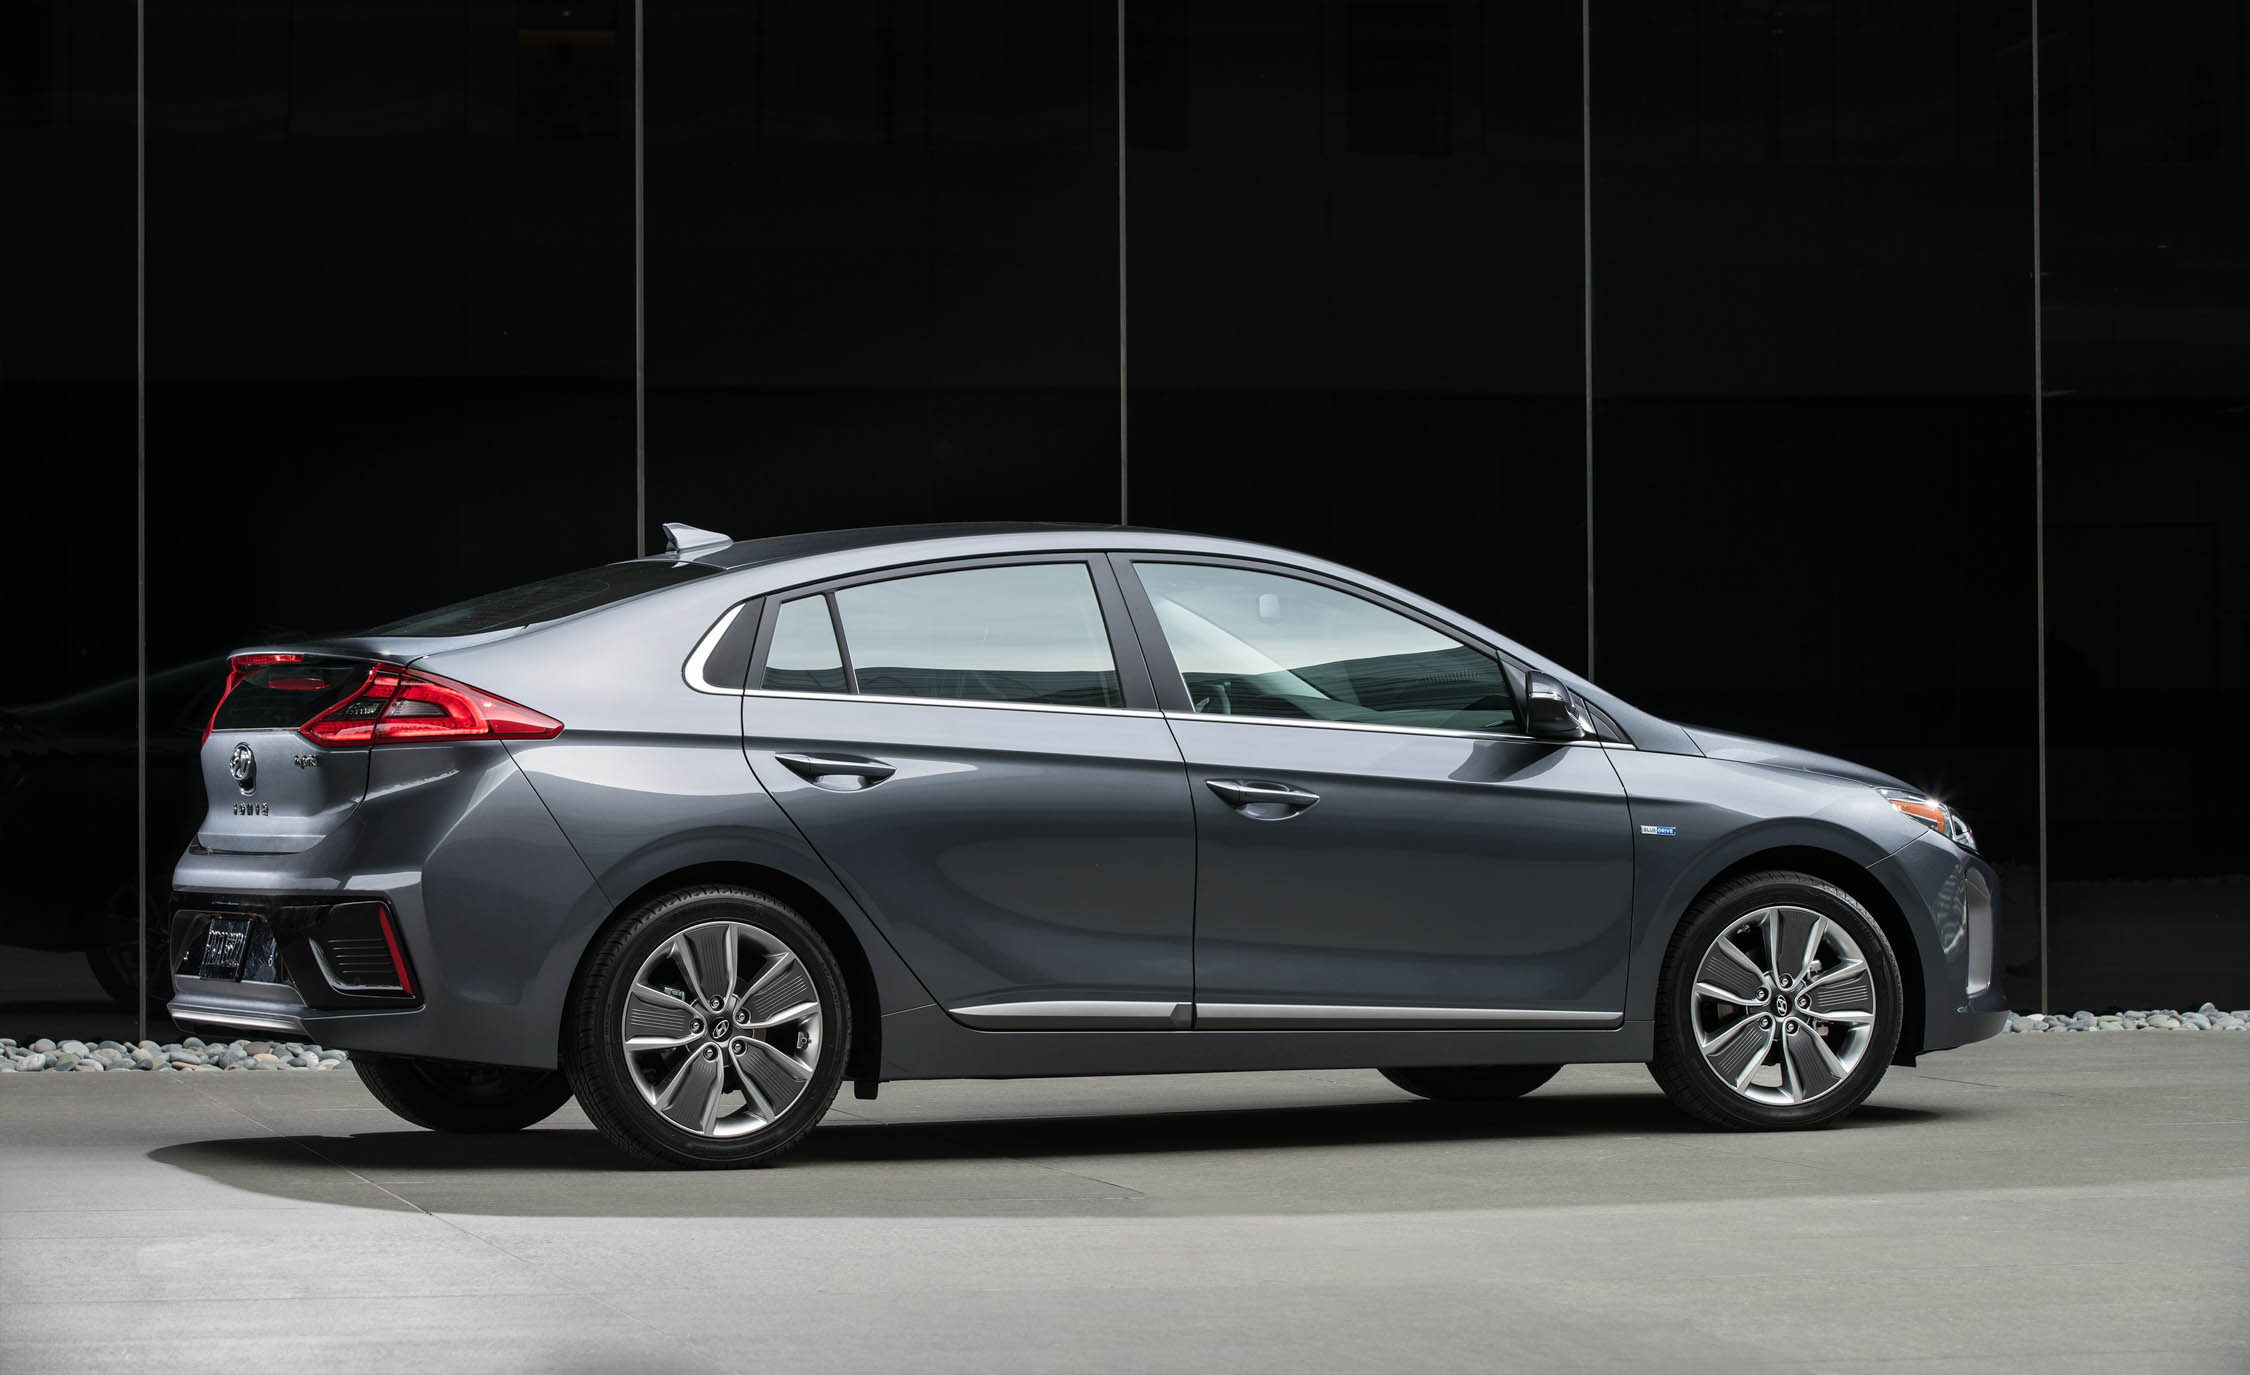 2017 Hyundai Ioniq Hybrid Exterior Side And Rear (Photo 42 of 67)